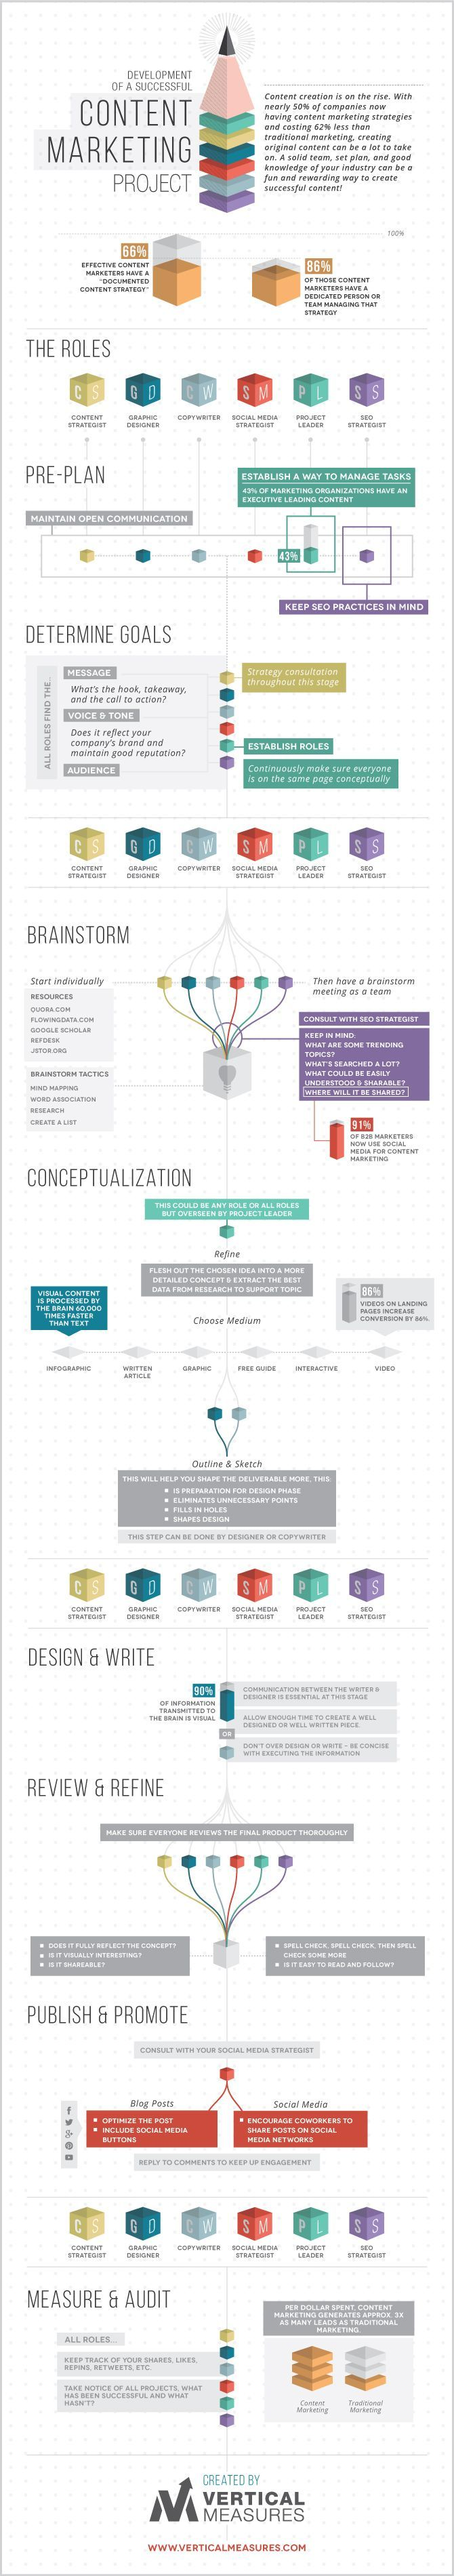 Developing a Successful Content Marketing Project - infographic